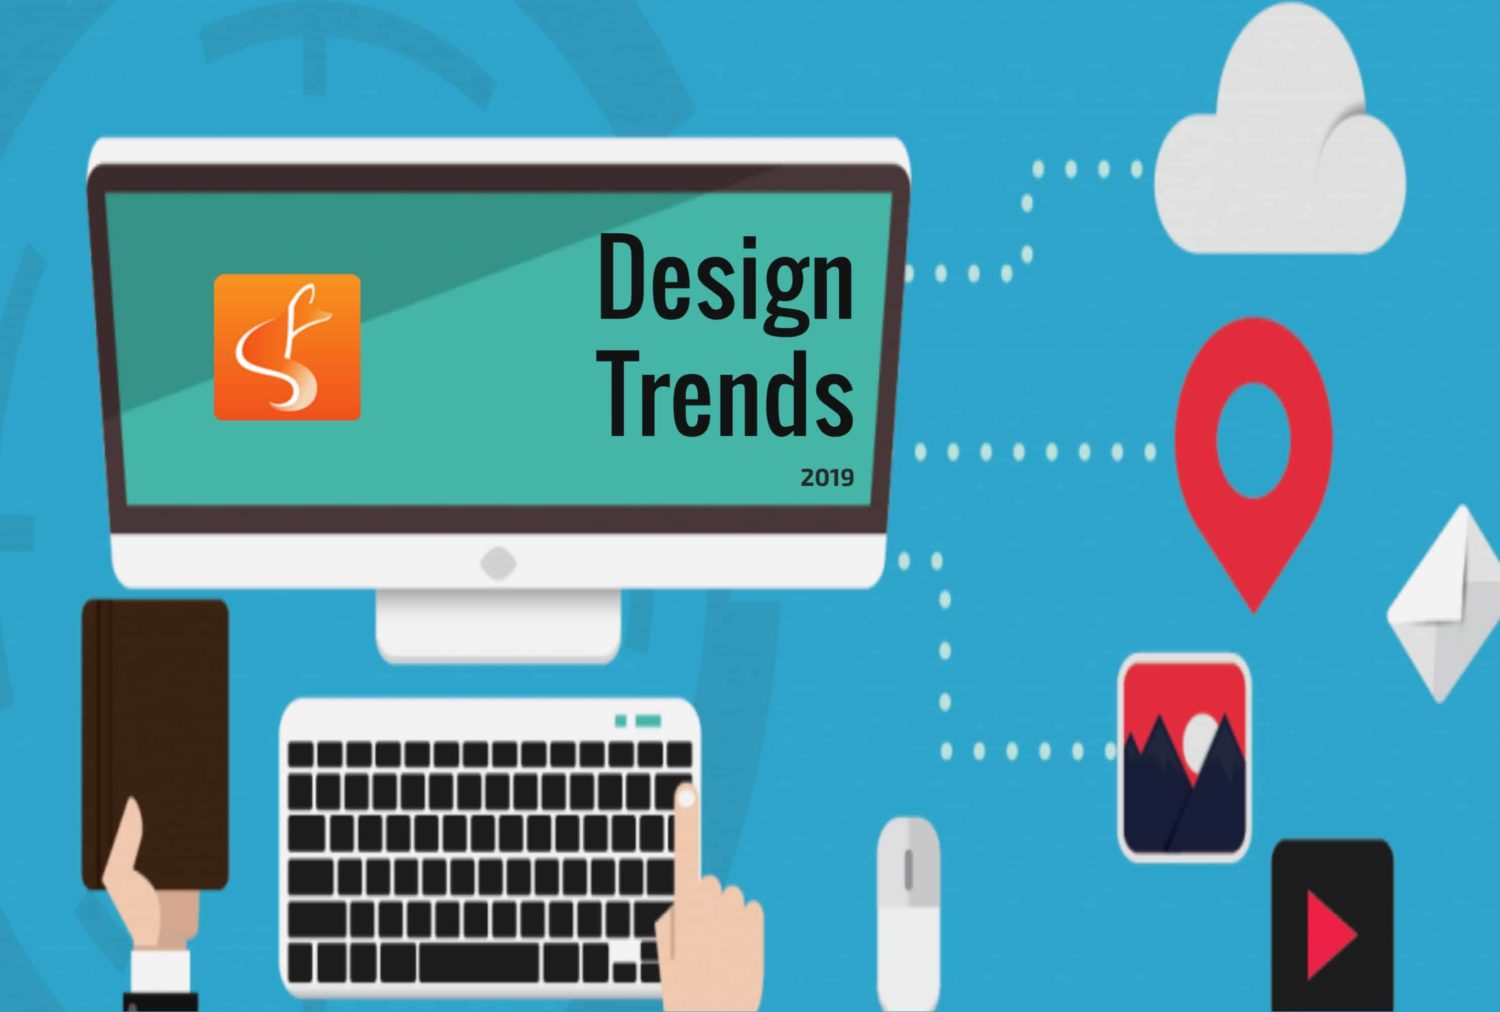 web design trends, design trends 2019, web design london ontario